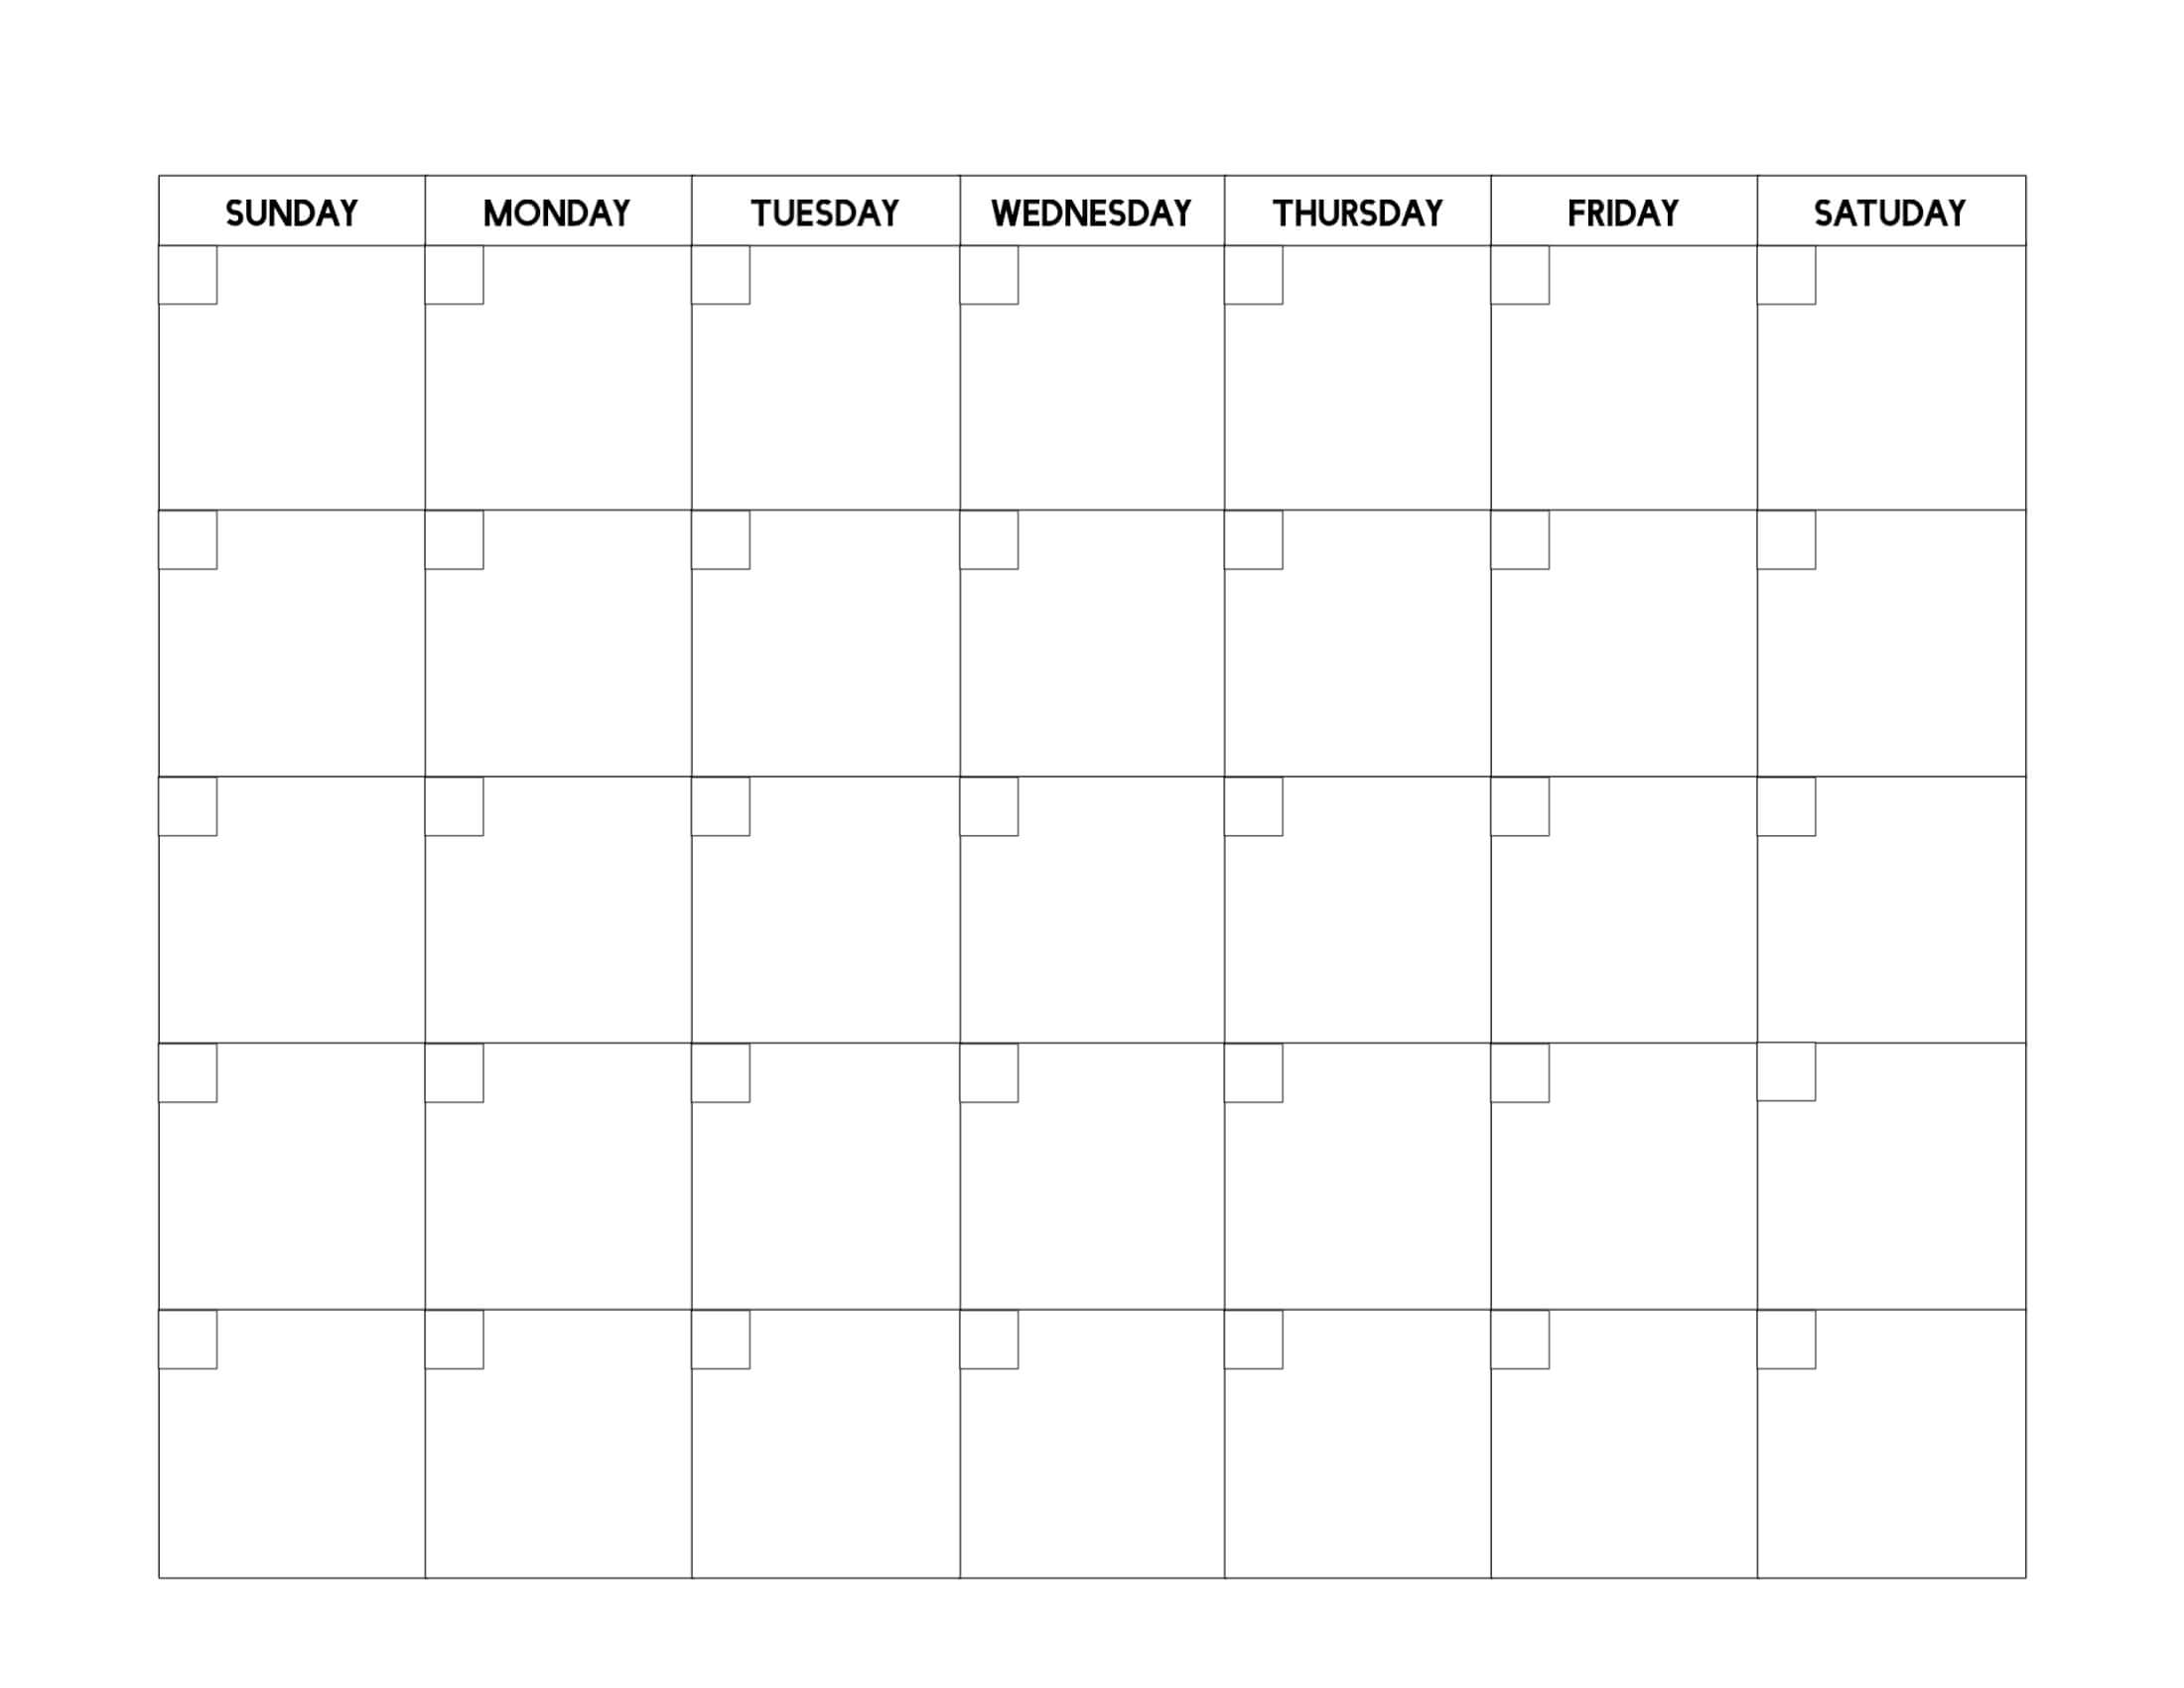 Free Printable Blank Calendar Template - Paper Trail Design with regard to Blank Calender Template